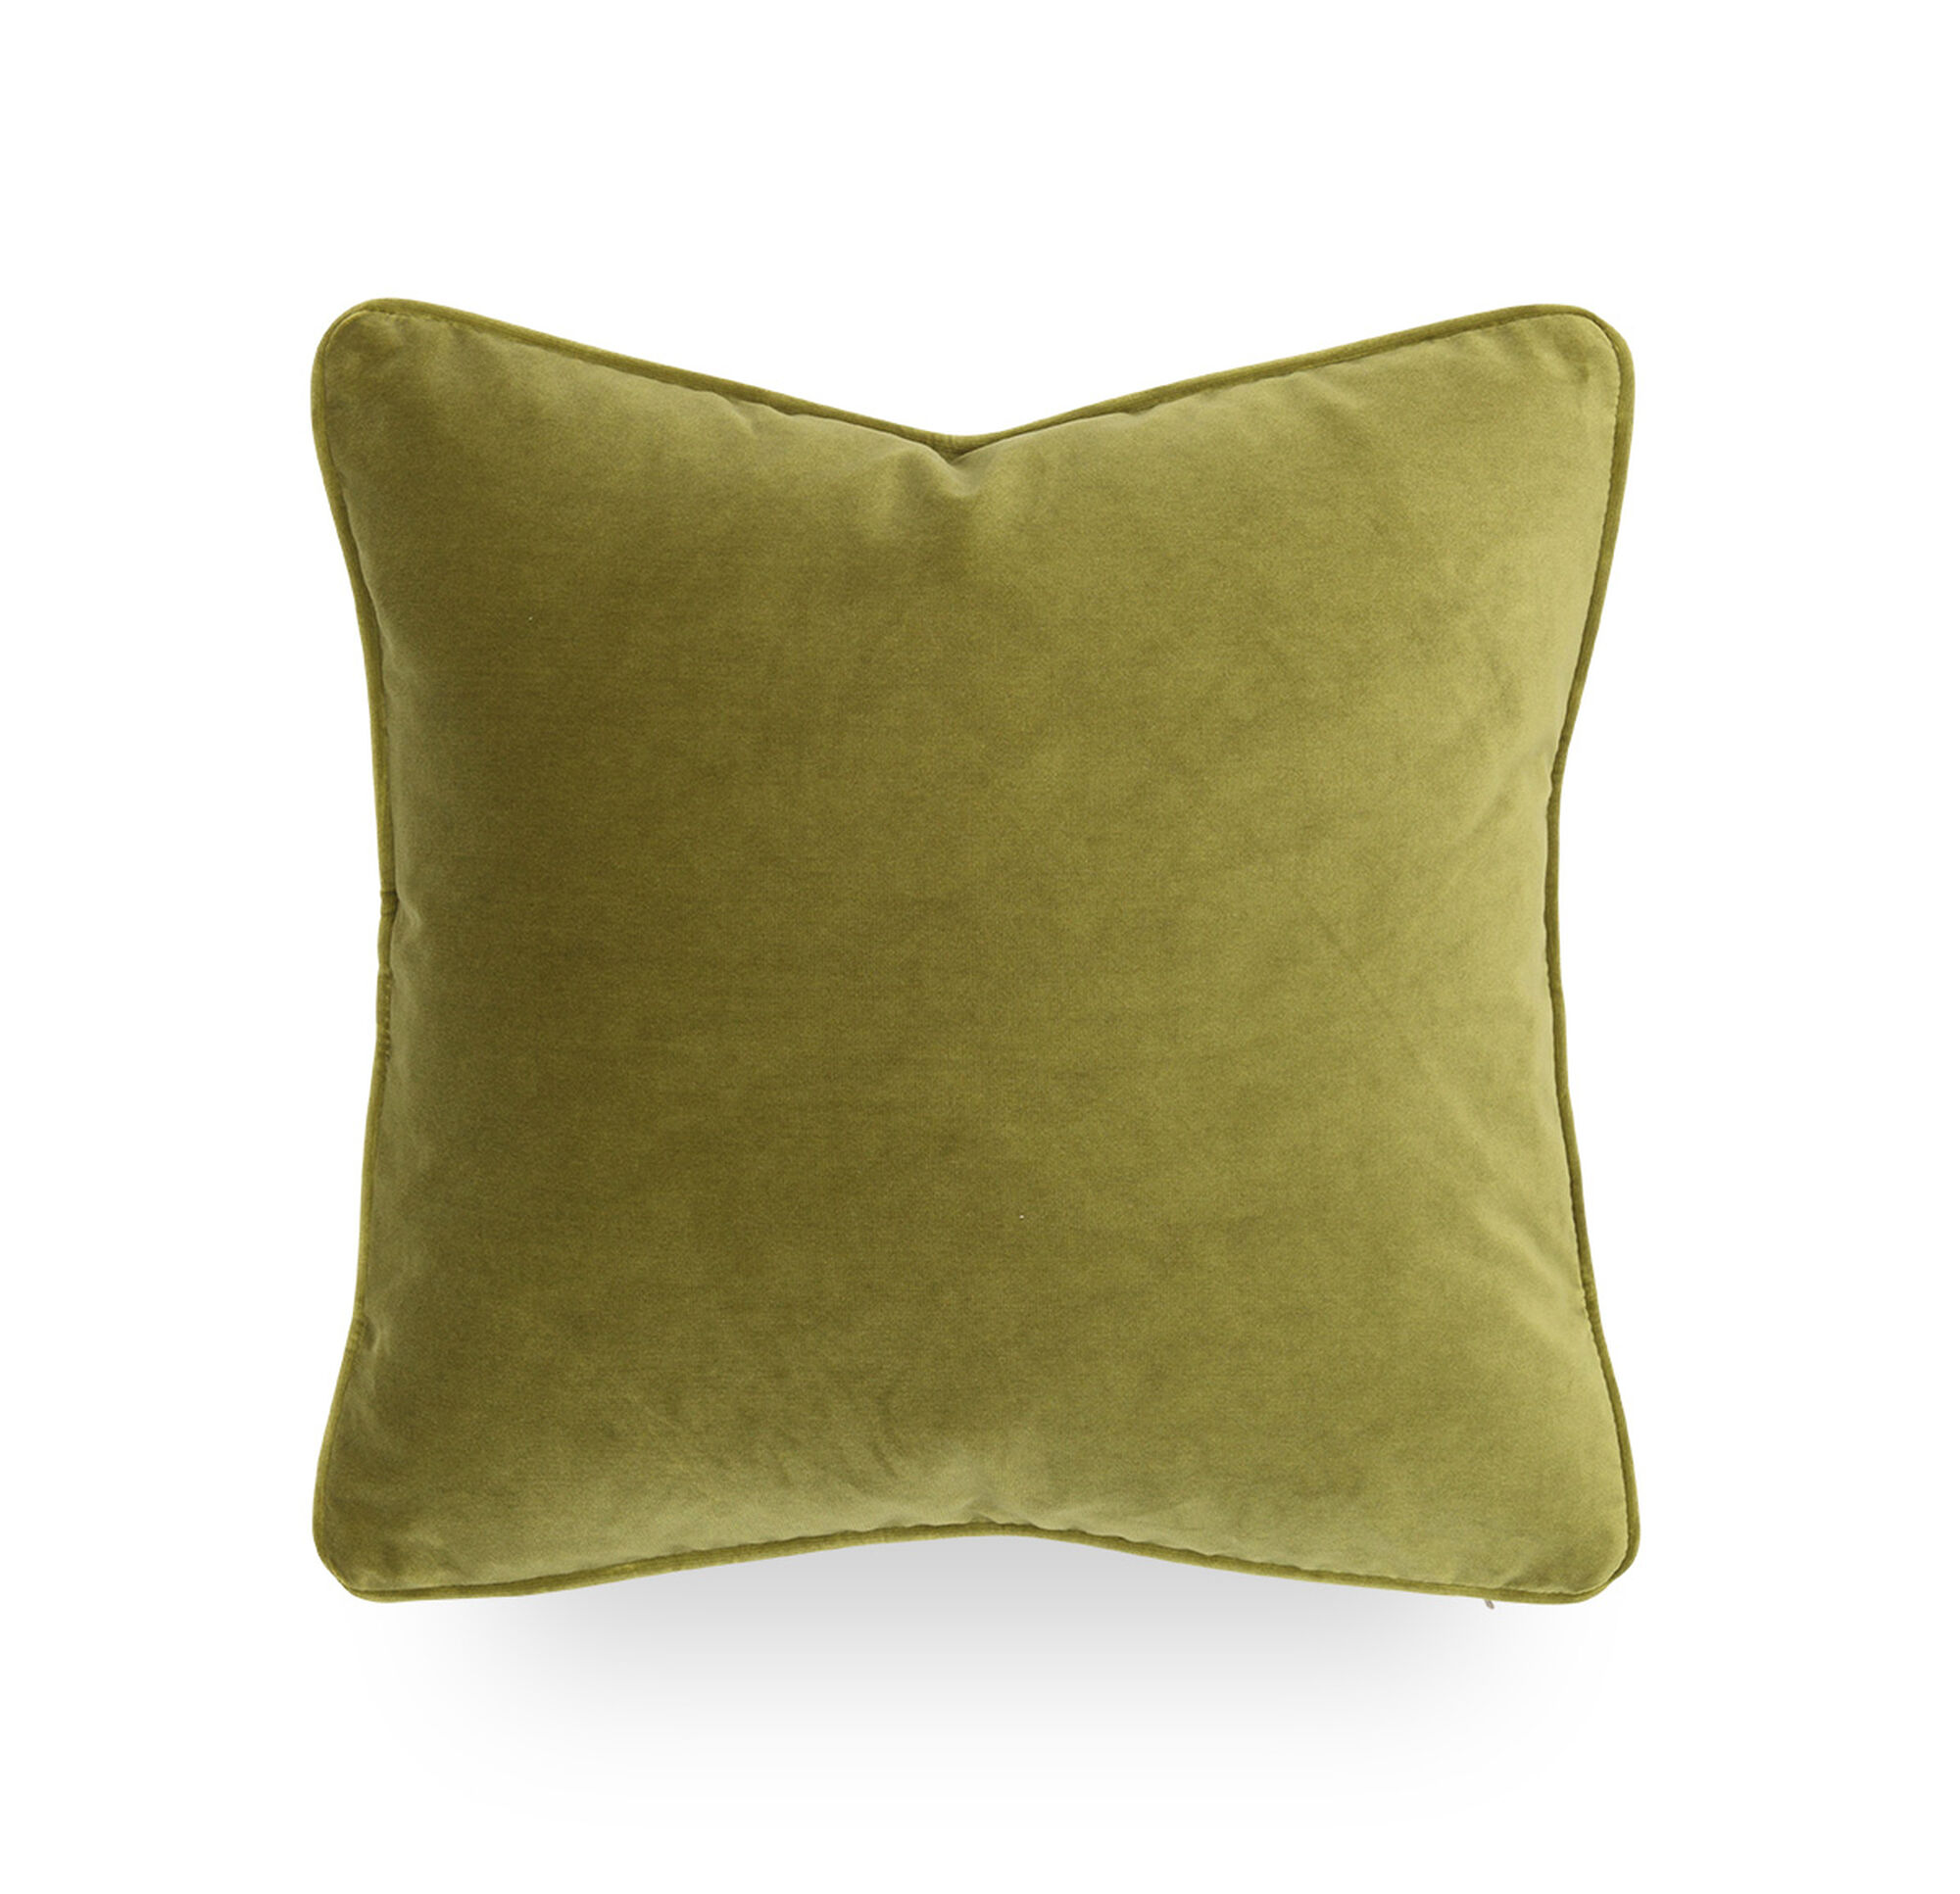 Square Throw Pillow Sizes : 17 IN. SQUARE THROW PILLOW